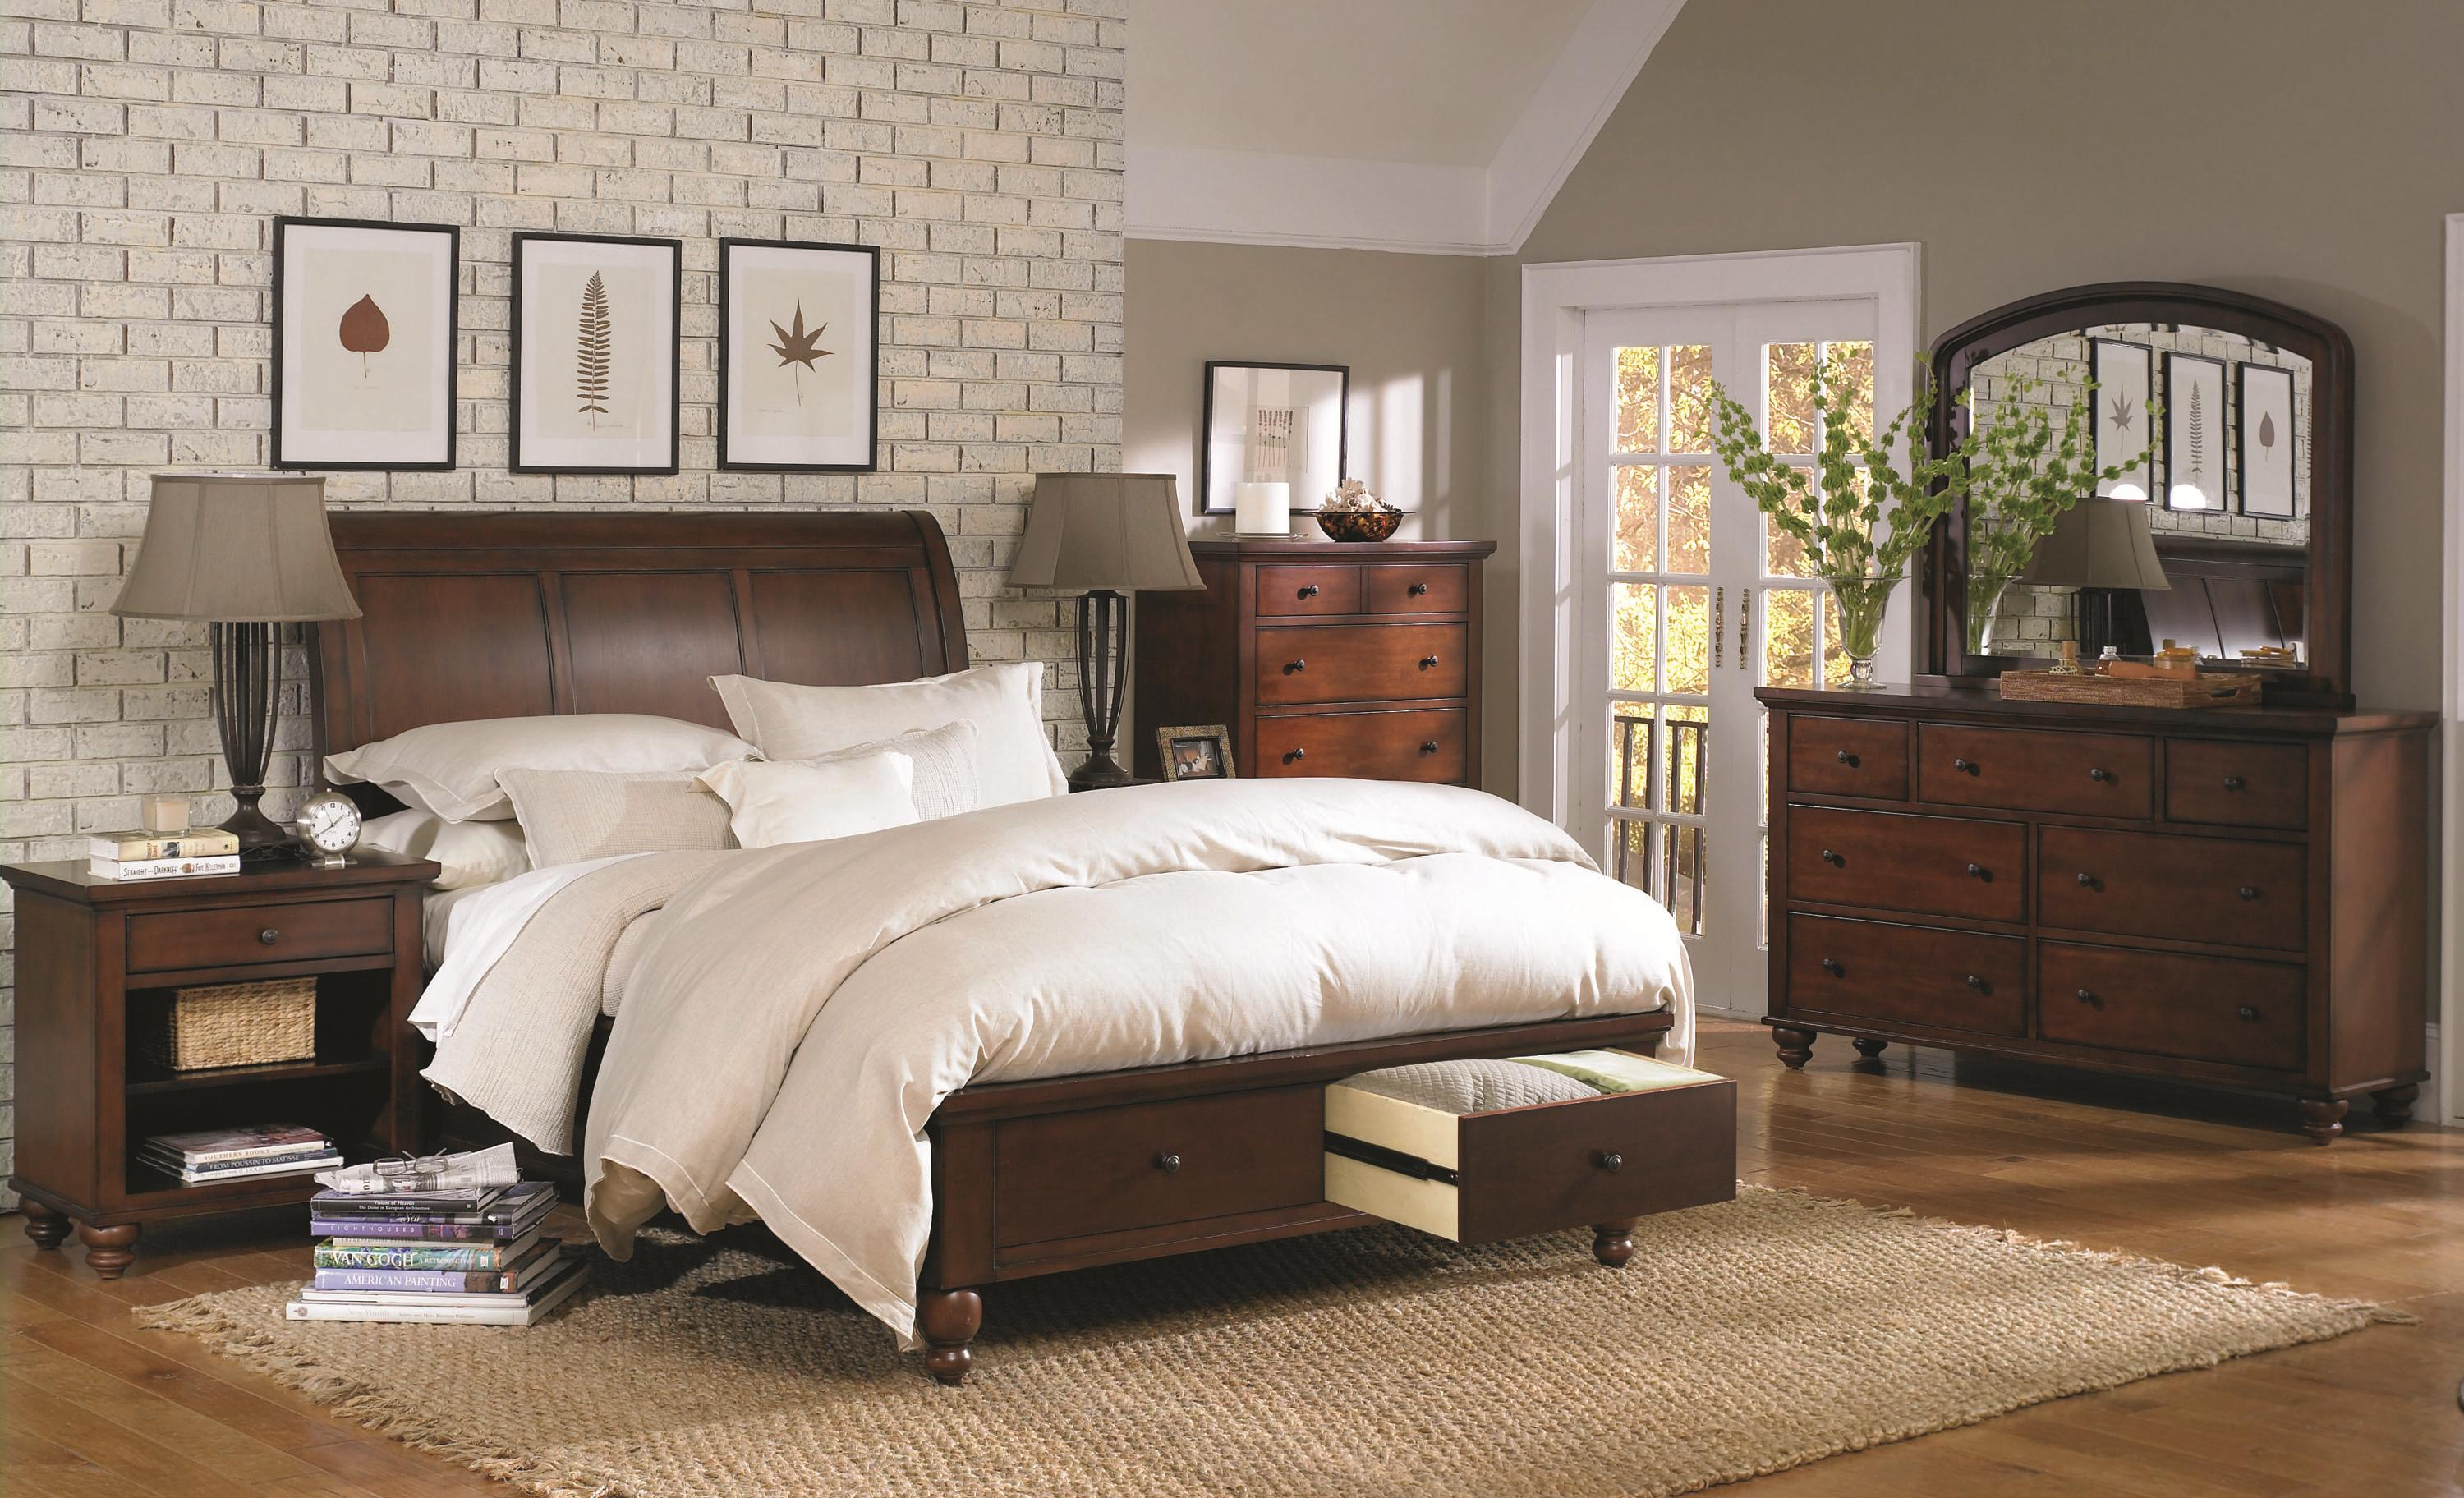 King Size Bed With Sleigh Headboard Amp Drawer Storage